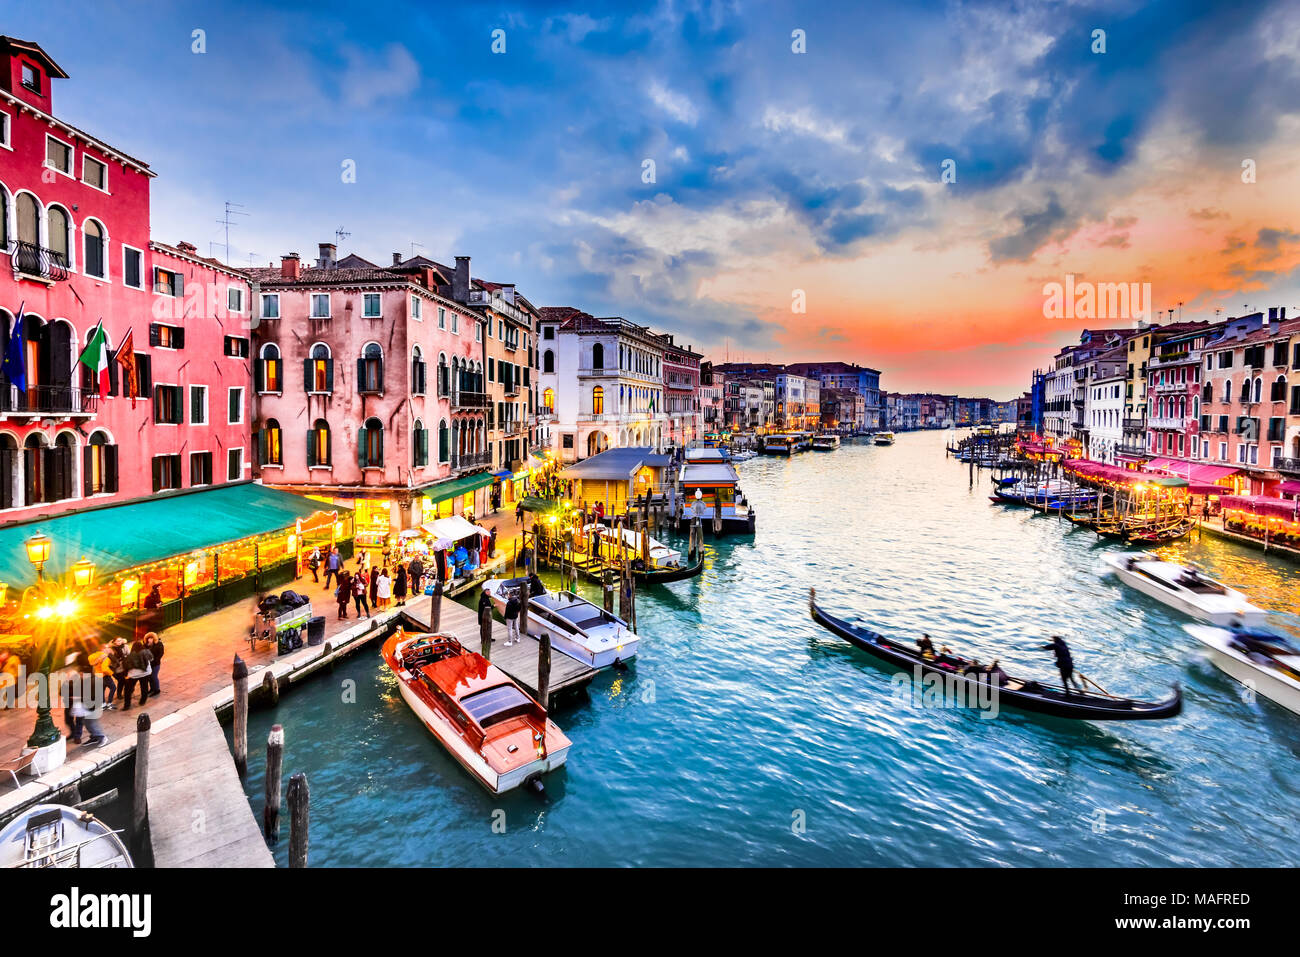 Venite, Italy  - Night image with Grand Canal, from oldest bridge Rialto, Venezia. - Stock Image